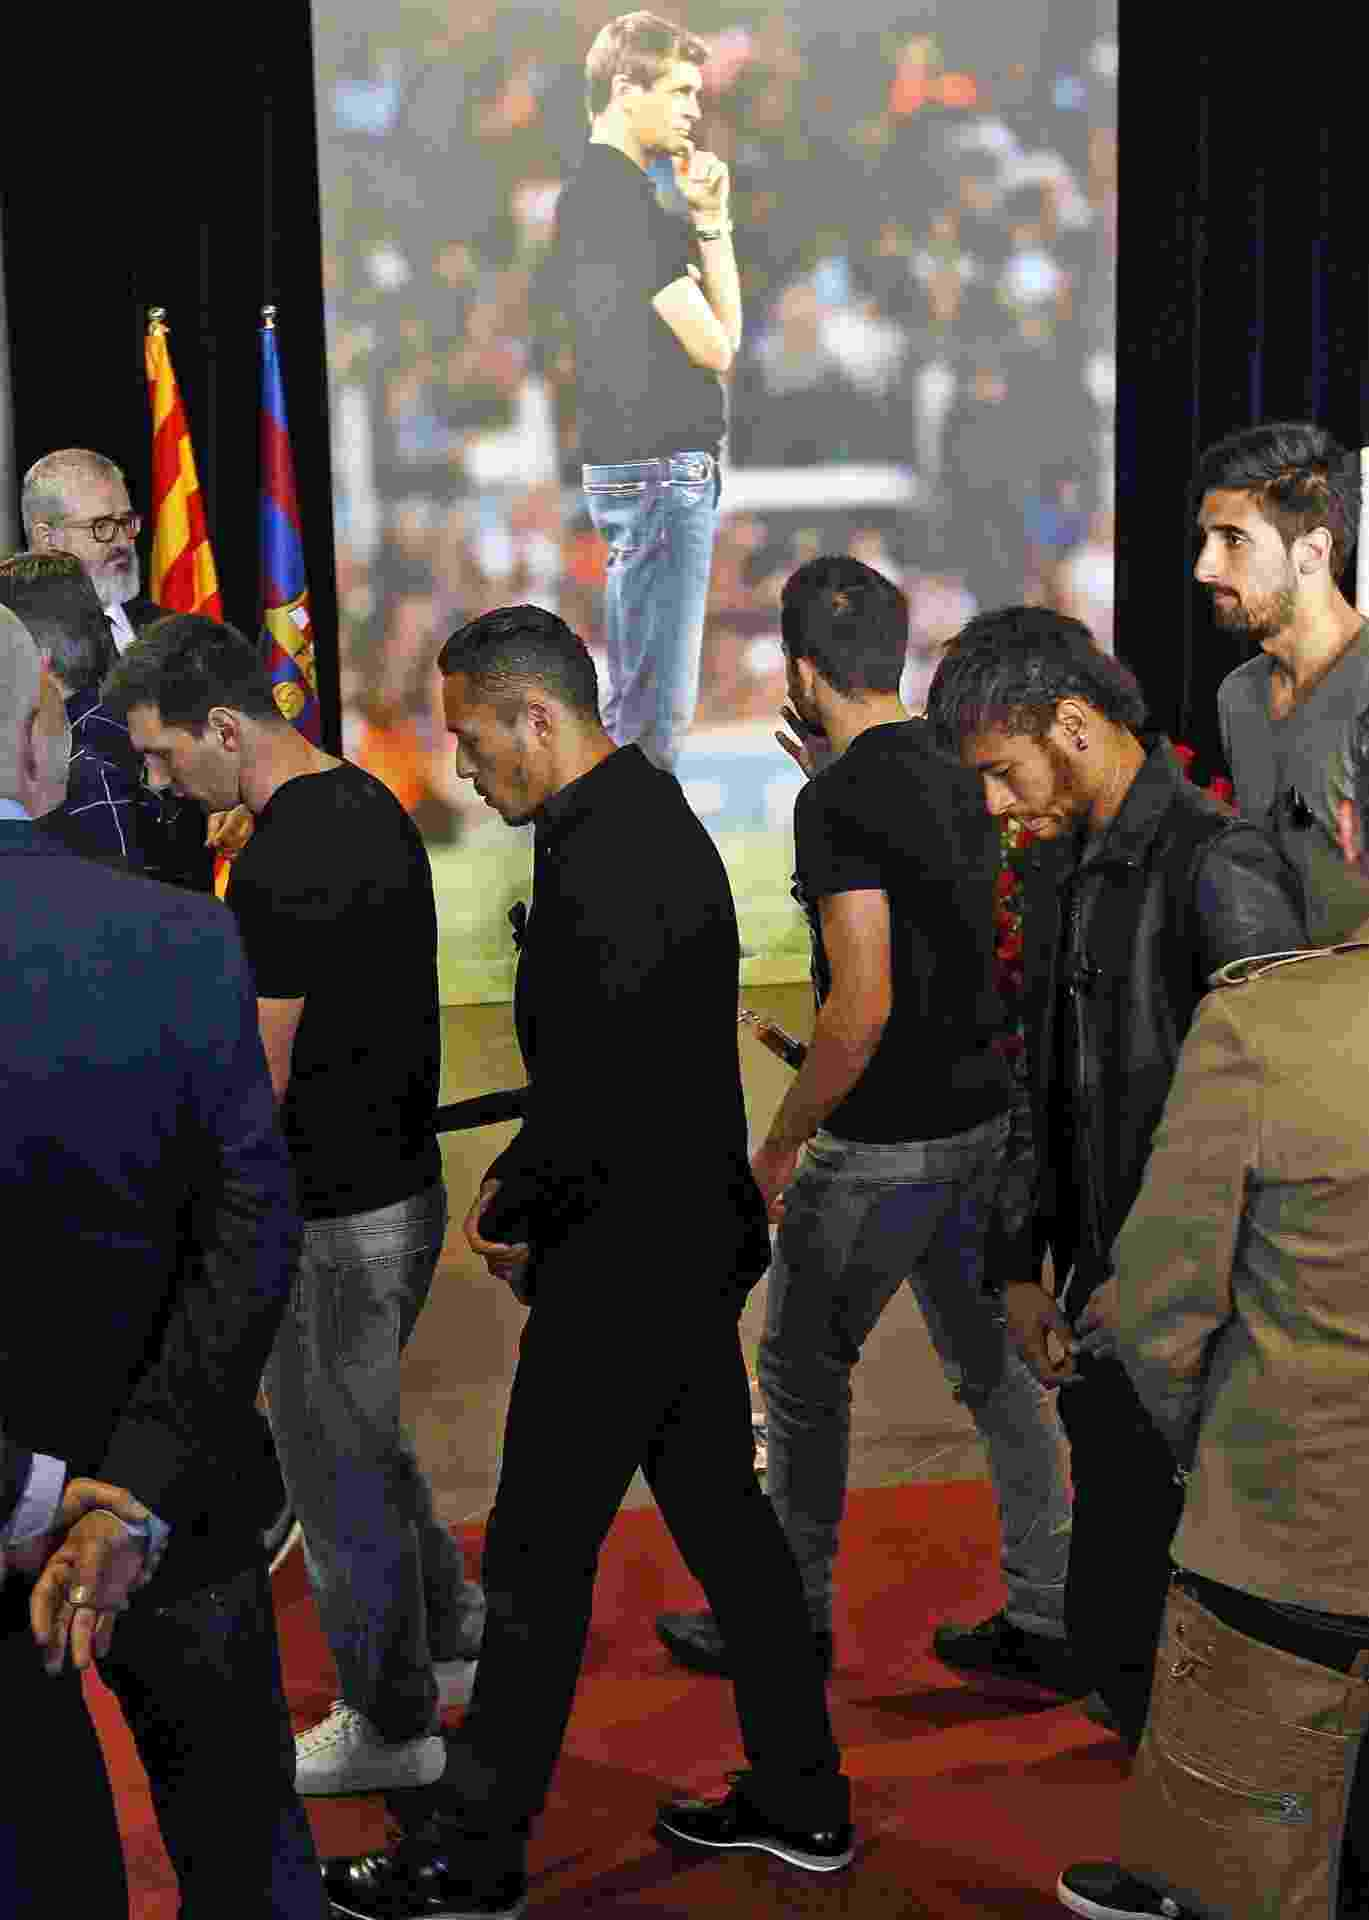 26.04.2014 - Messi, Neymar e outros atletas do Barcelona participaram do velório do técnico Tito Vilanova no Camp Nou - AFP PHOTO / QUIQUE GARCIA